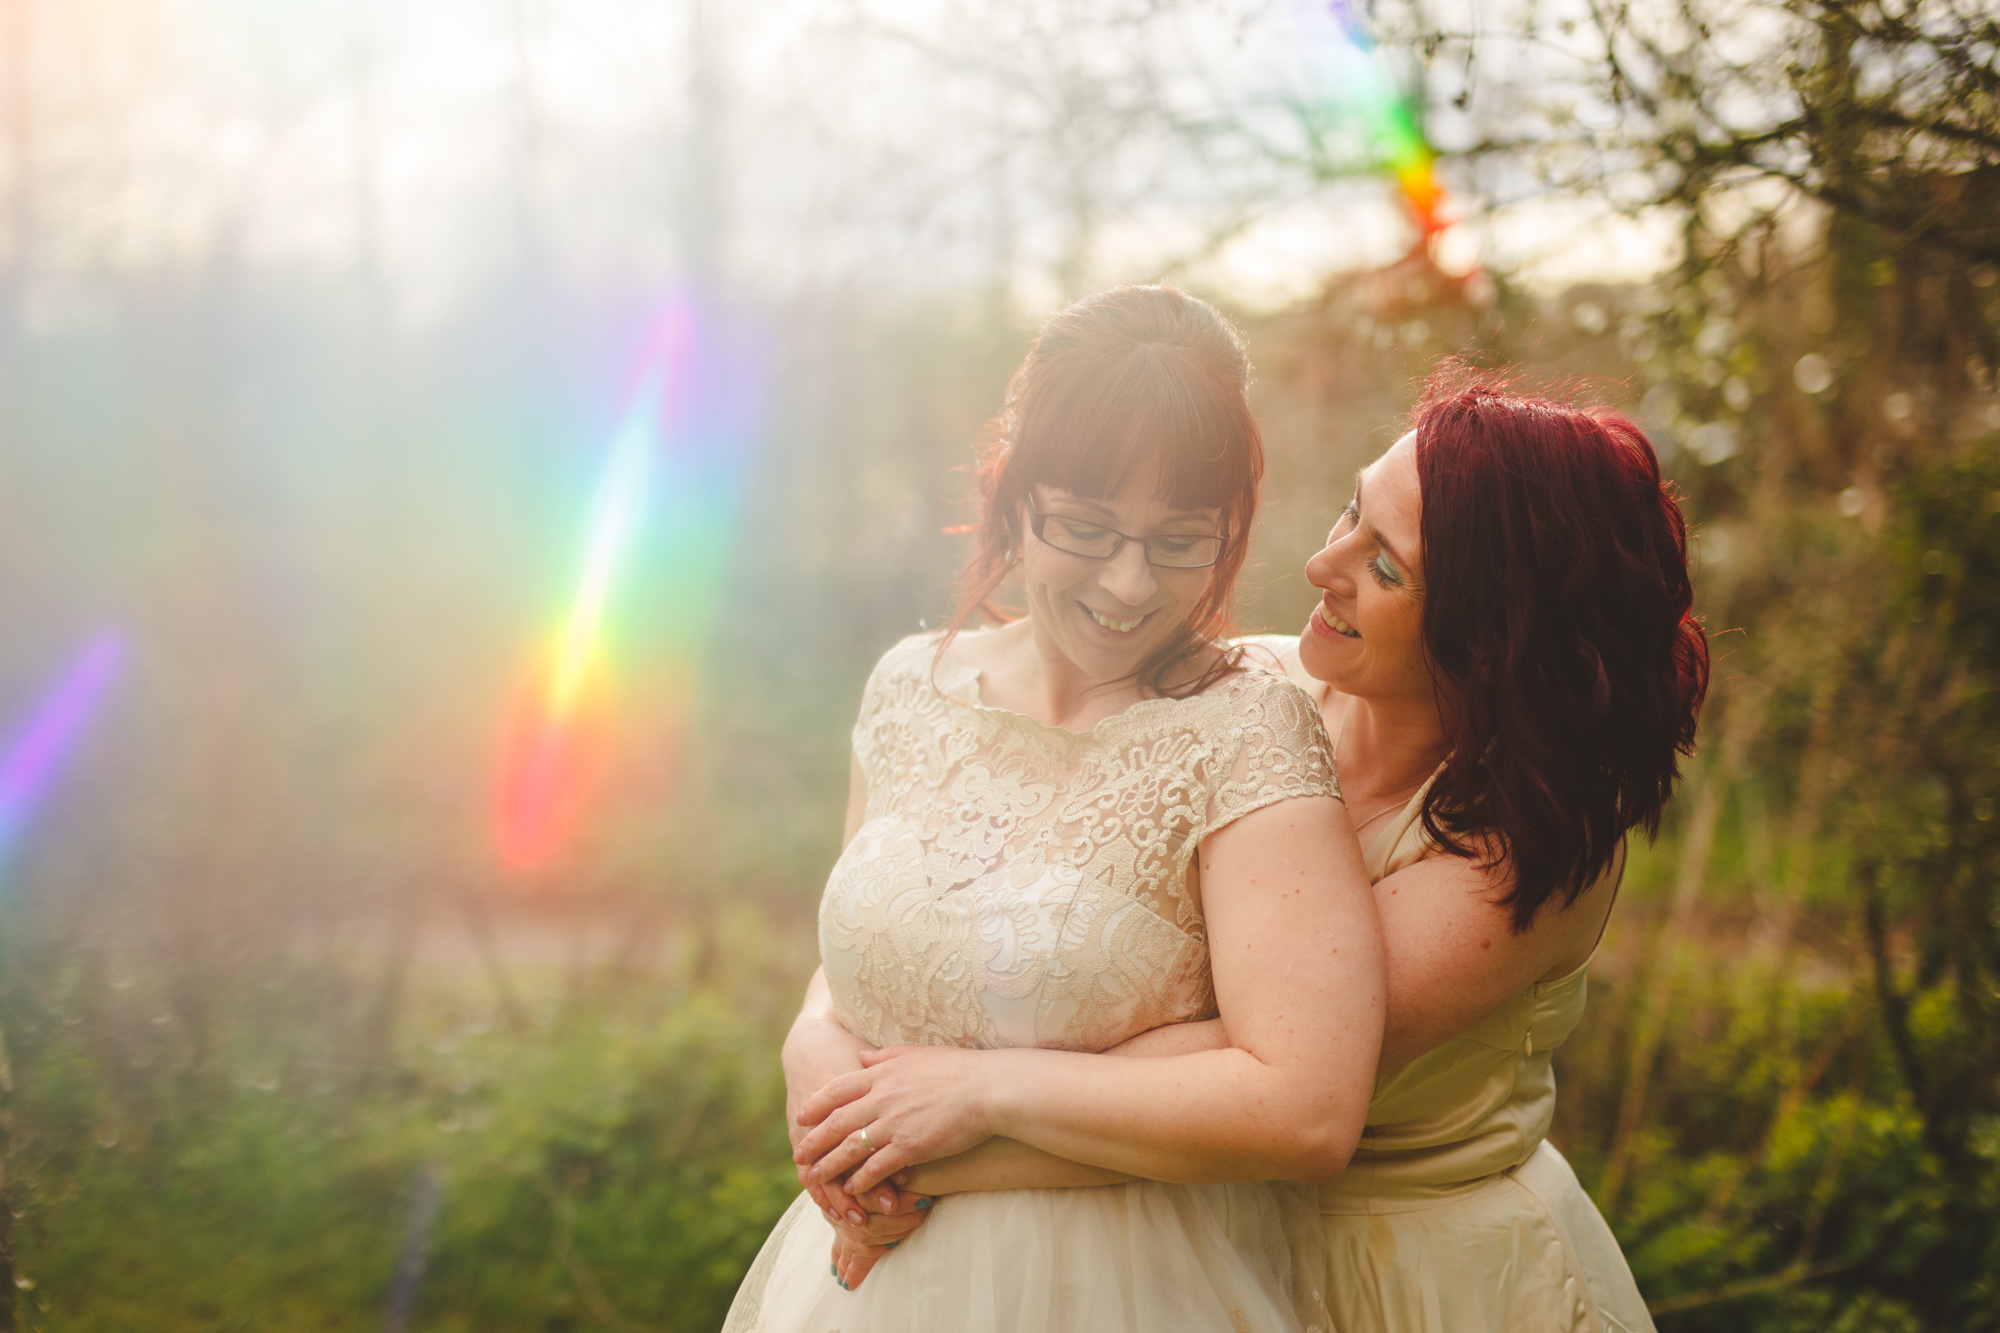 alternative-wedding-photographer-uk-camera-hannah-27.jpg